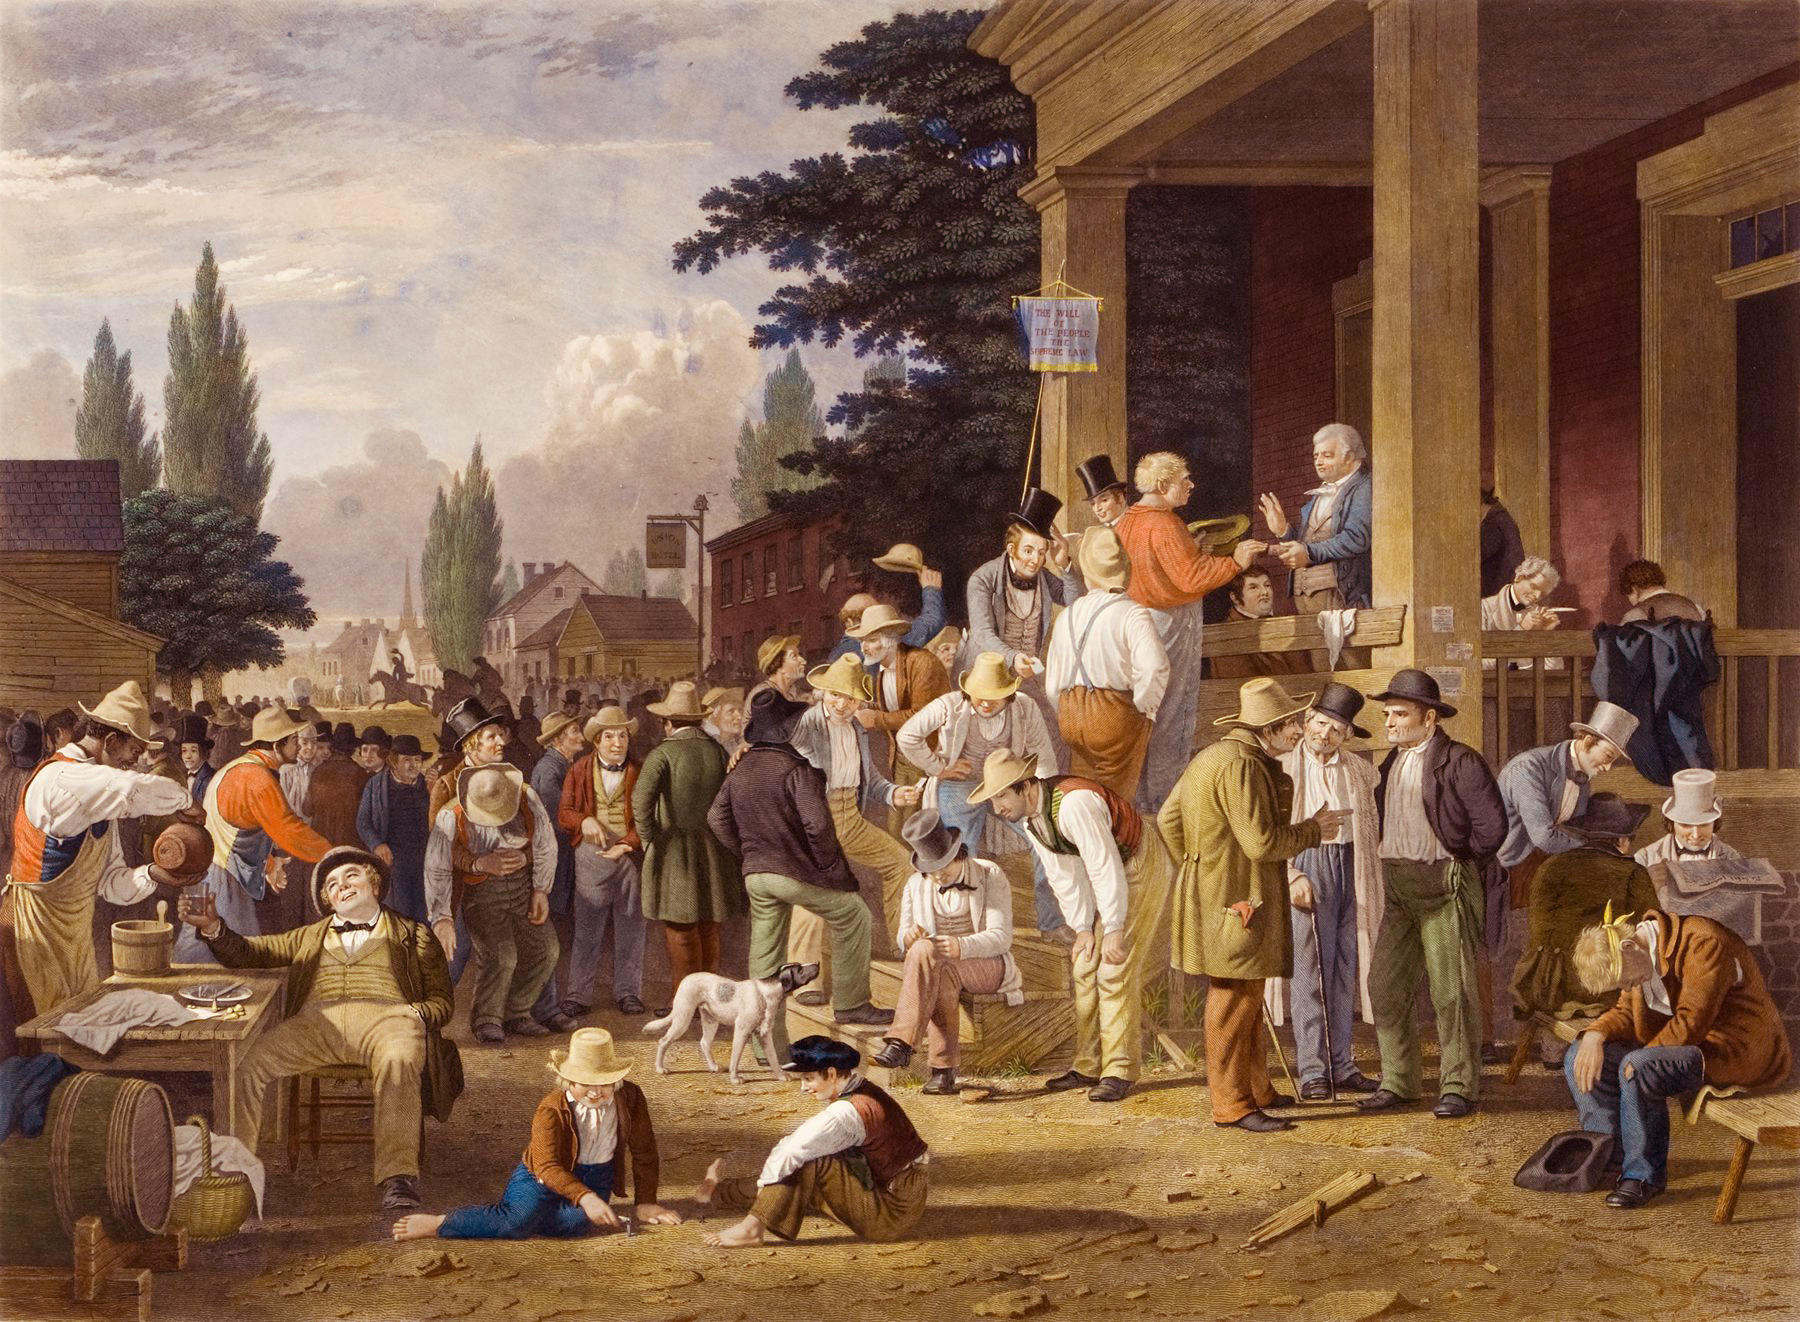 County-Election-George-Caleb-Bingham-1846